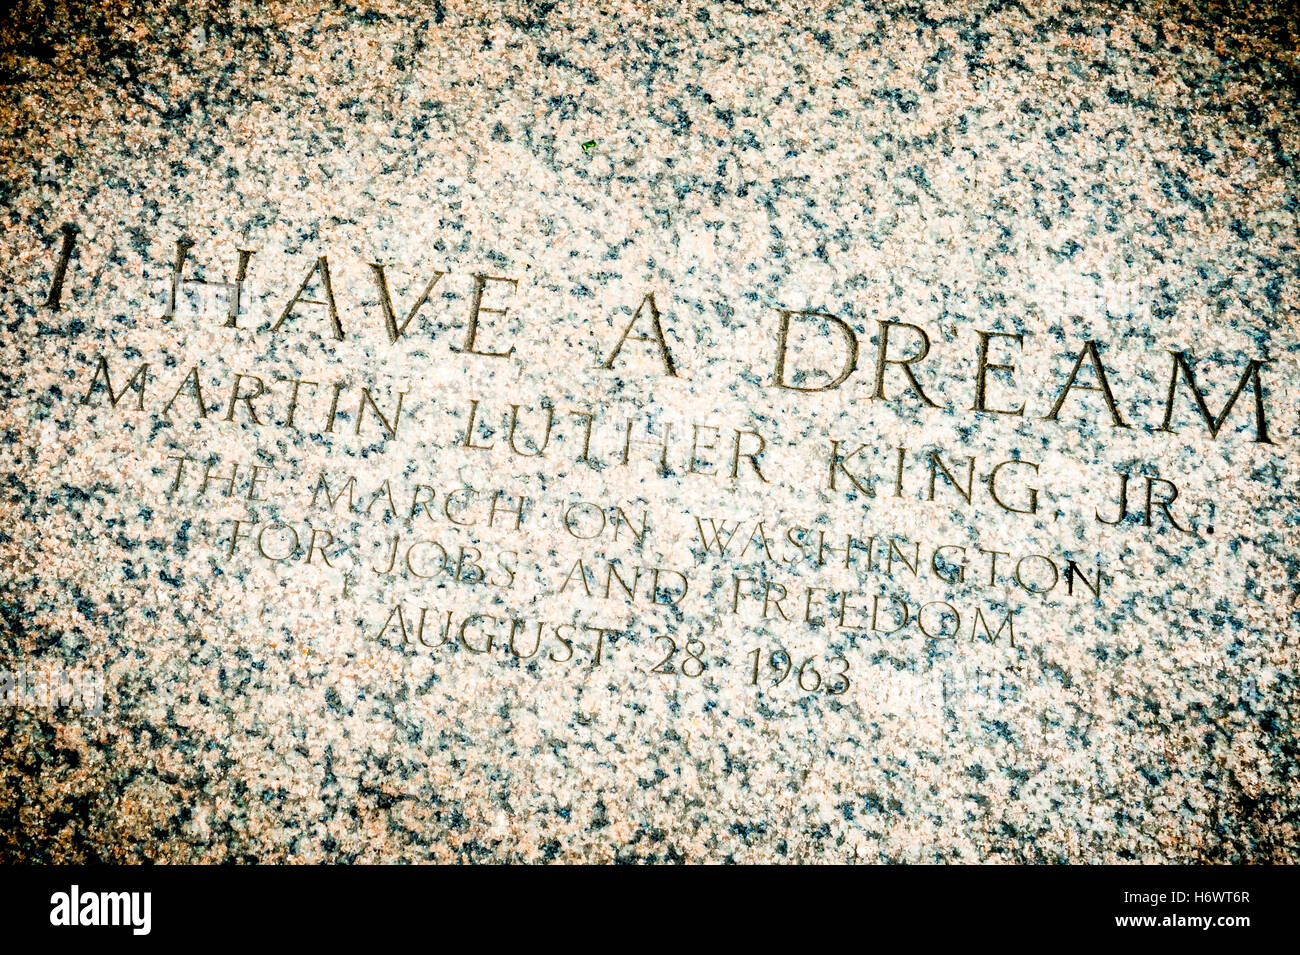 WASHINGTON DC - JULY 30, 2014: 'I Have a Dream' quote on the steps of the Lincoln Memorial memorializing - Stock Image